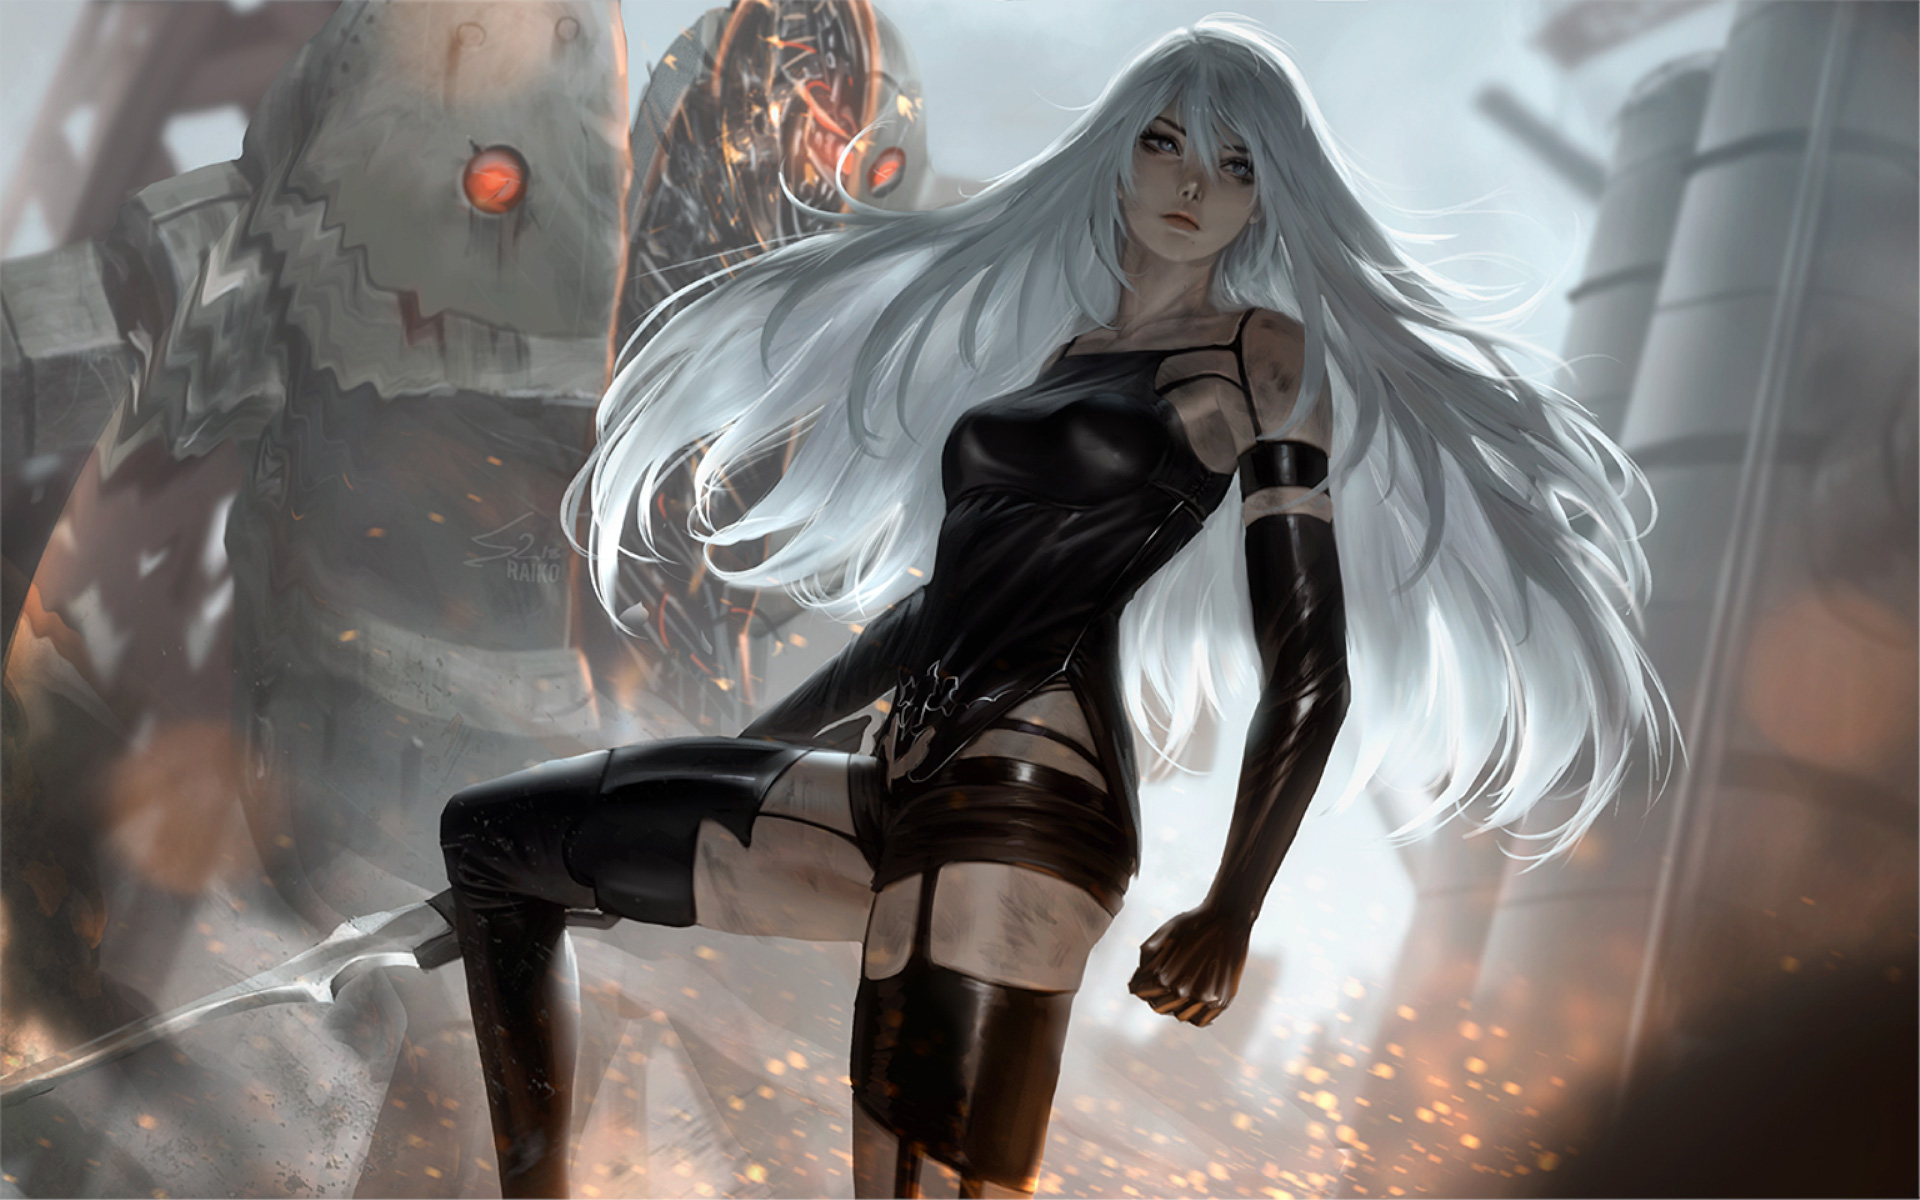 Nier Automata Fantasy Game Art Full Hd Wallpaper: NieR Automata YoRHa Type A No 2, HD Games, 4k Wallpapers